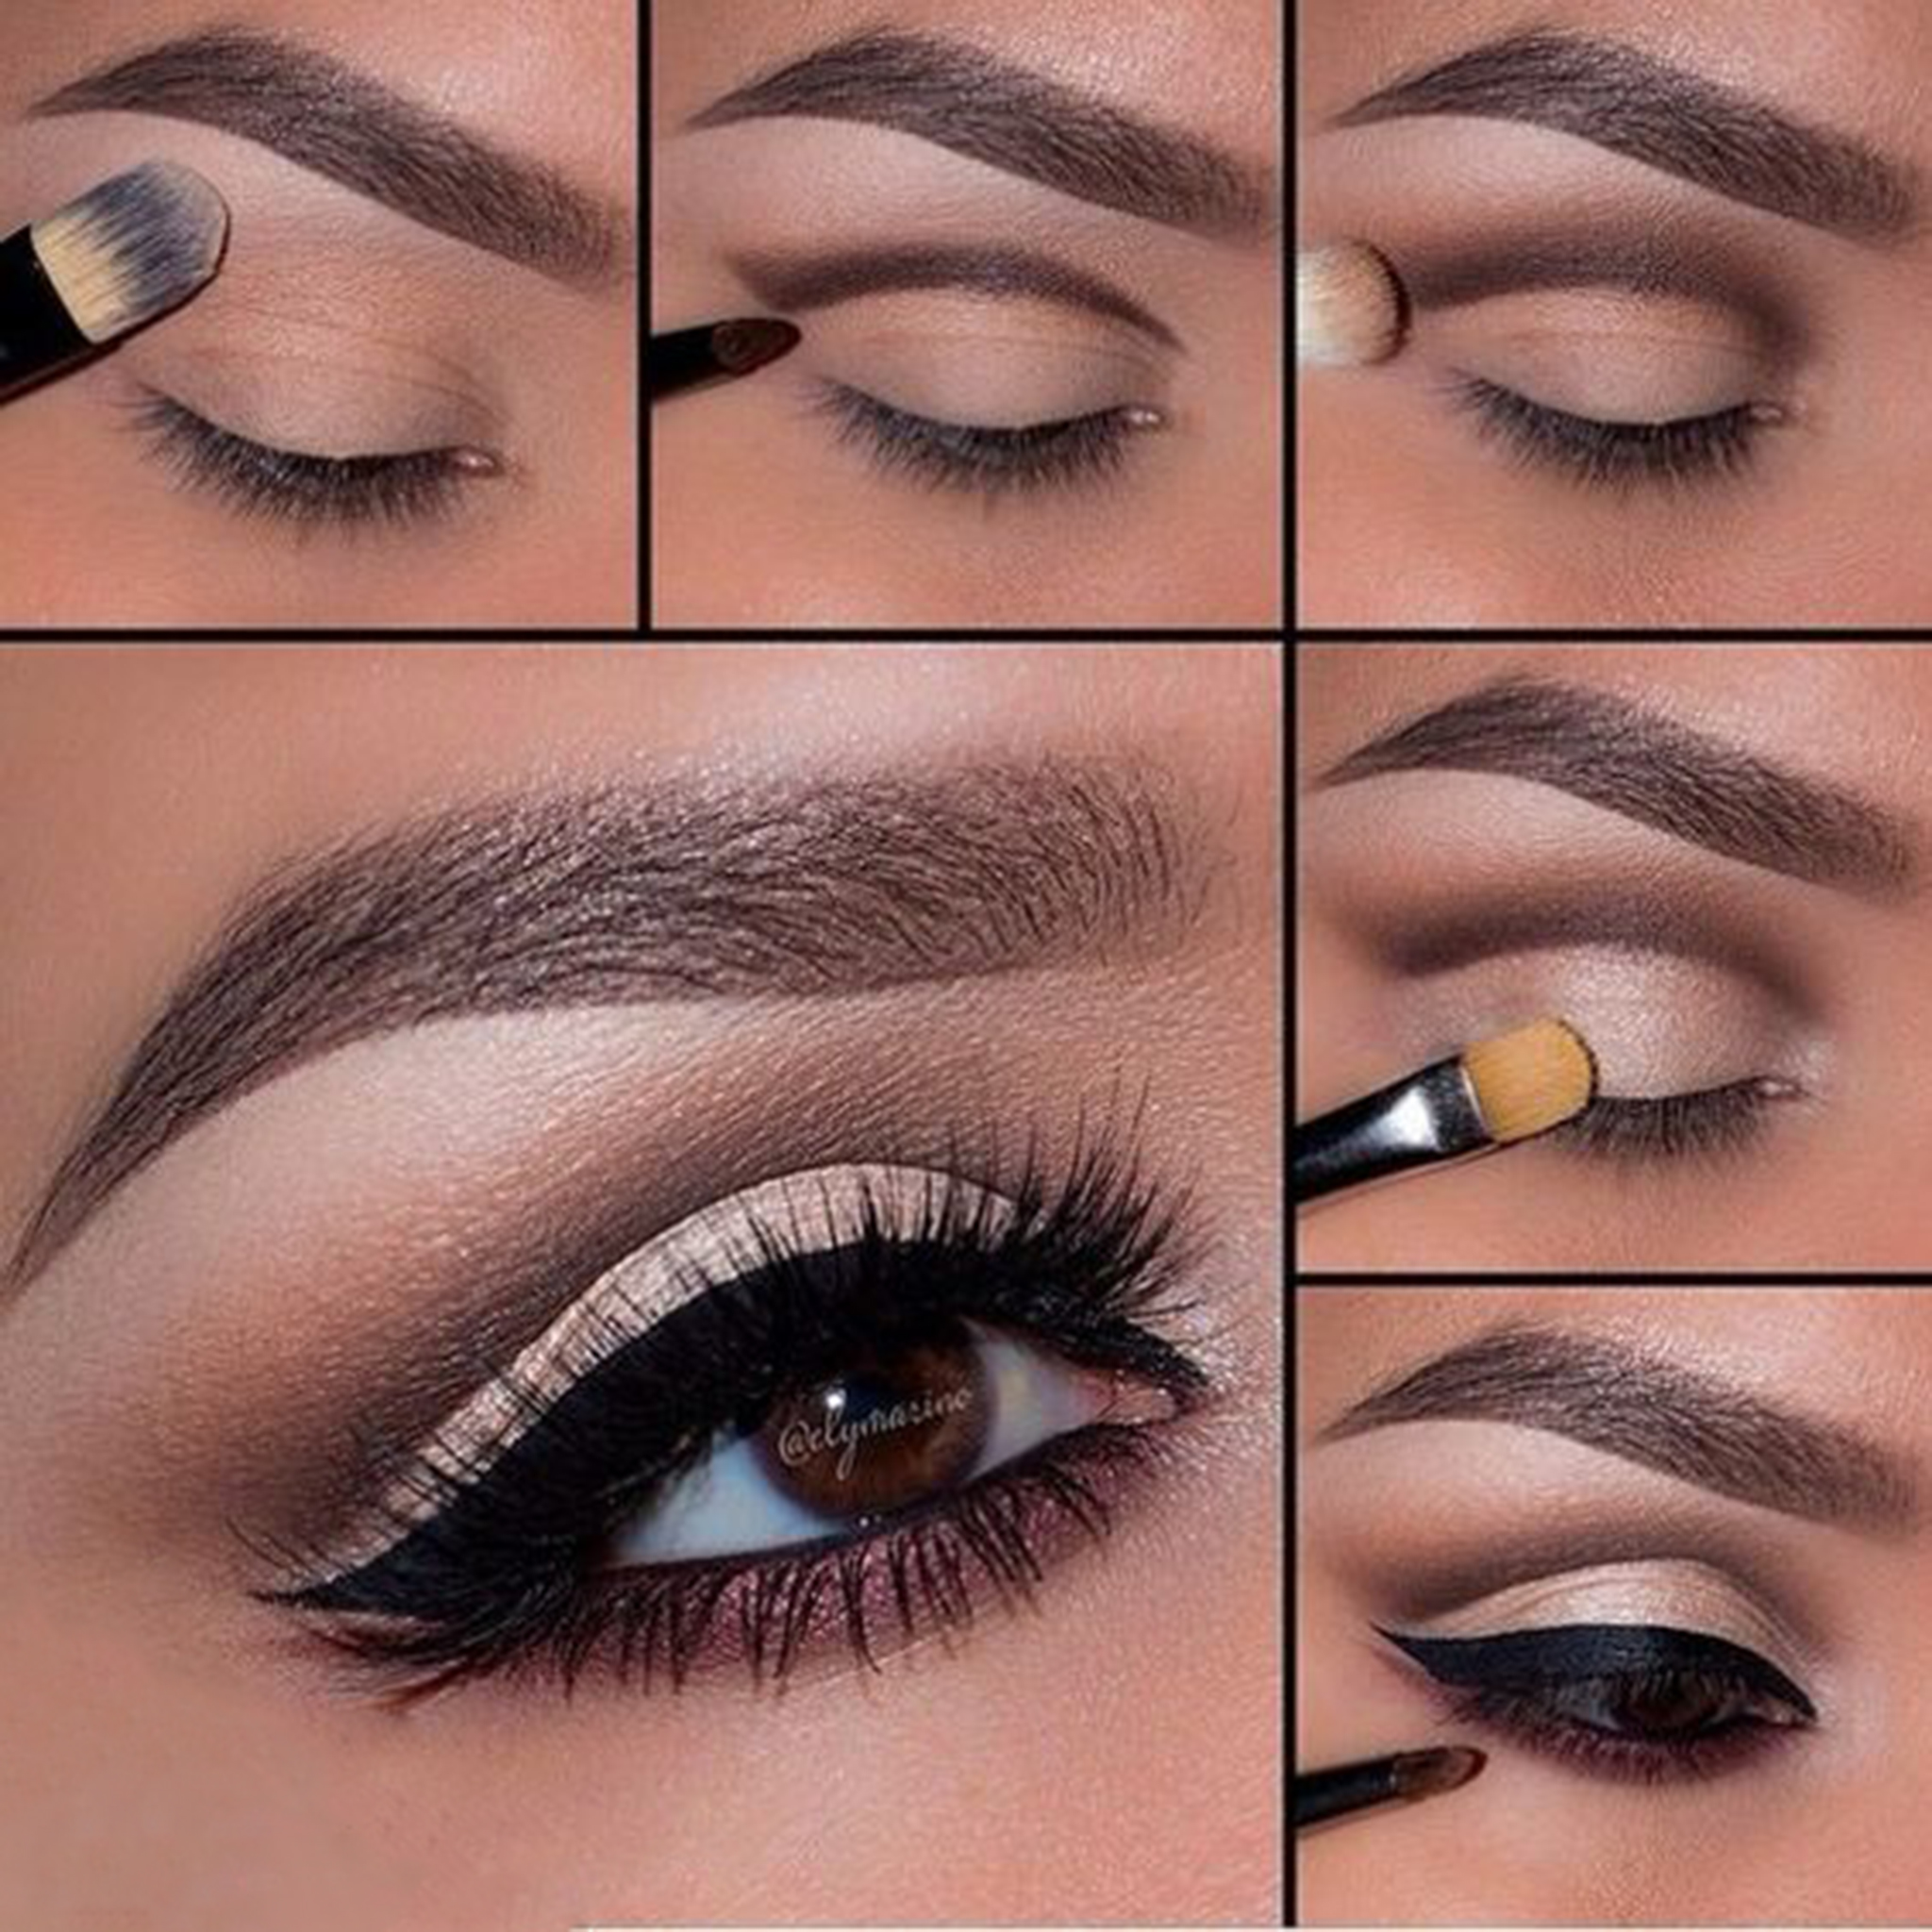 5 step by step smokey eye makeup tutorials for beginners – gymbuddy now